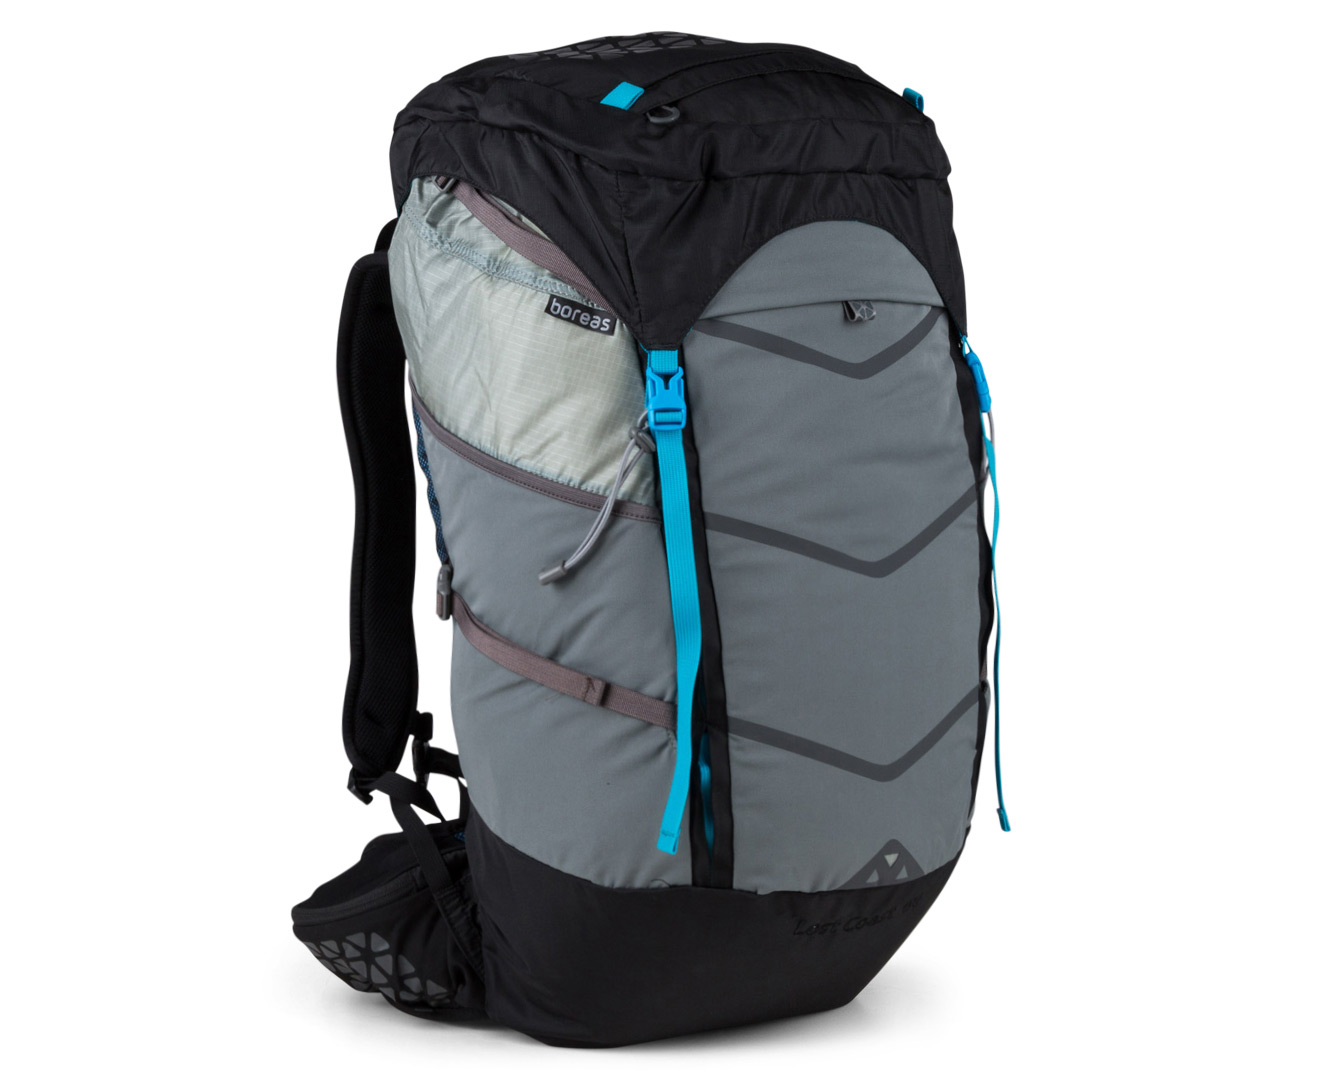 386ff12db62f Boreas Lost Coast 60L Backpack - Farallon Black